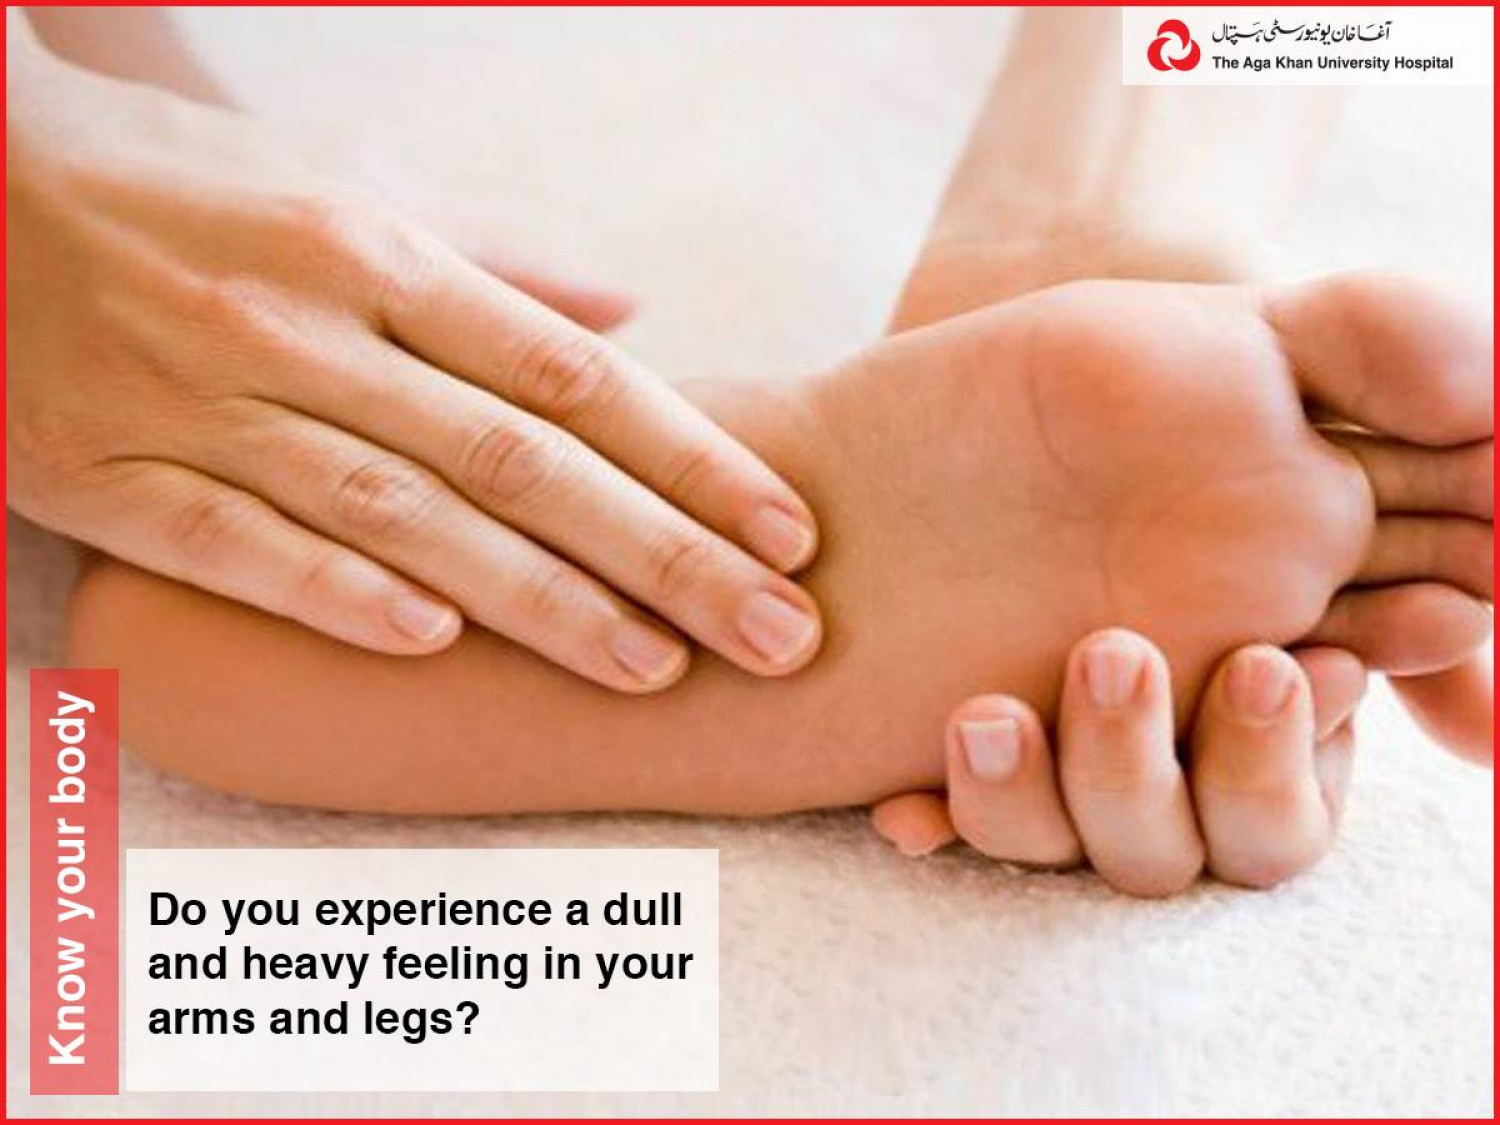 Do you experience a dull and heavy feeling in your arms and legs Infographic